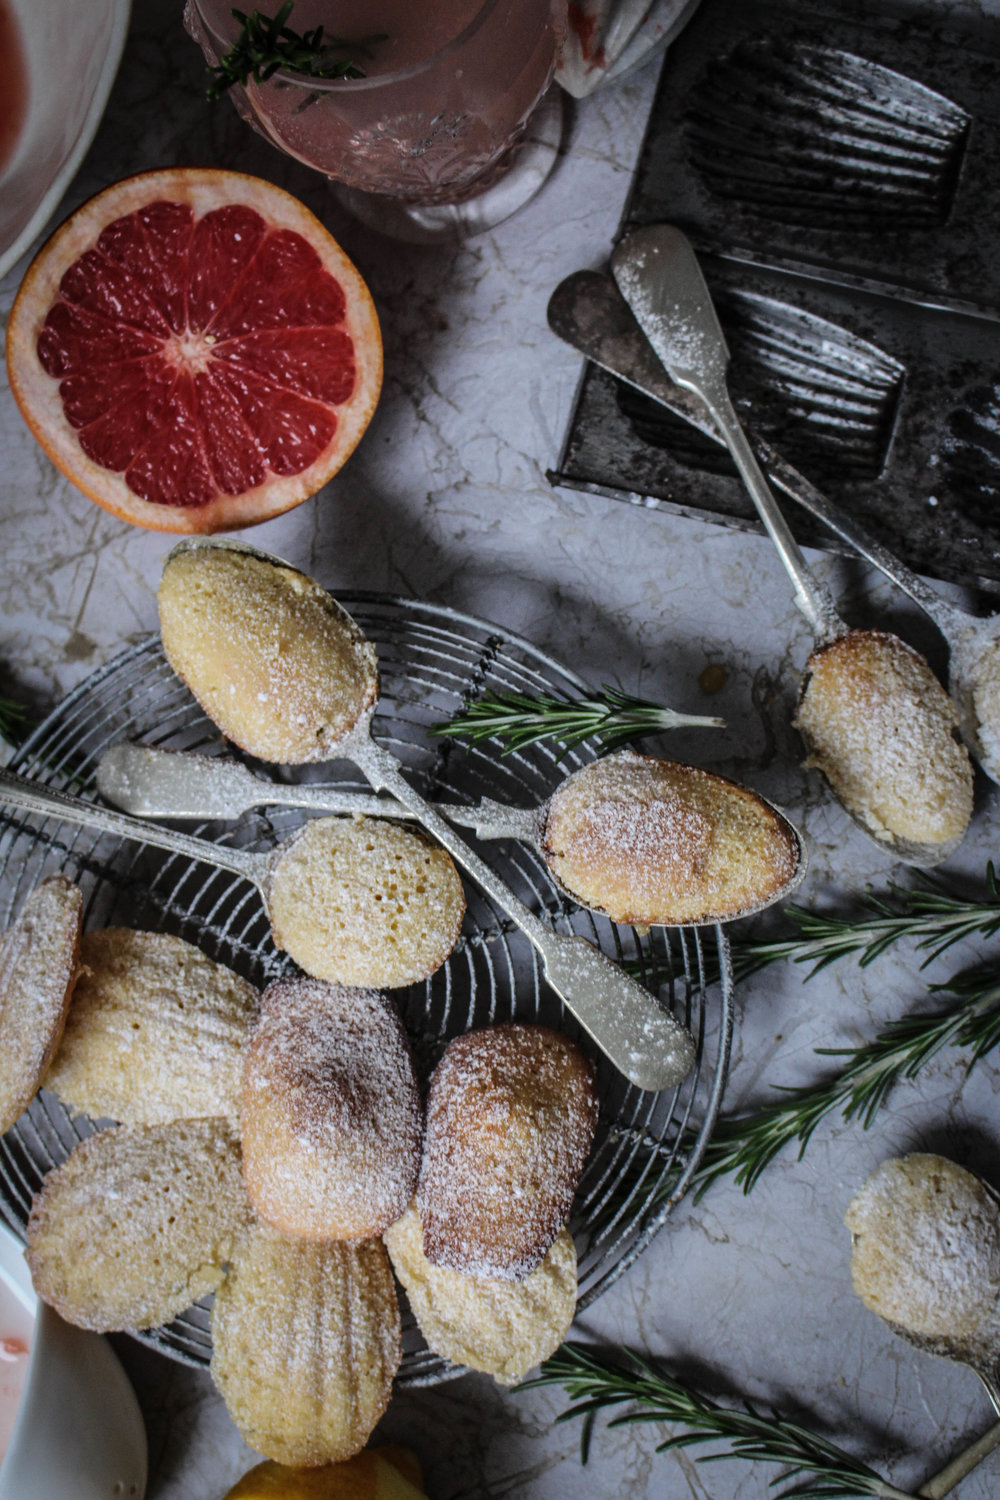 Pink-Grapefruit-and-Rosemary-Madeleines-a-guest-post-from-Twigg-Studios-4.jpg